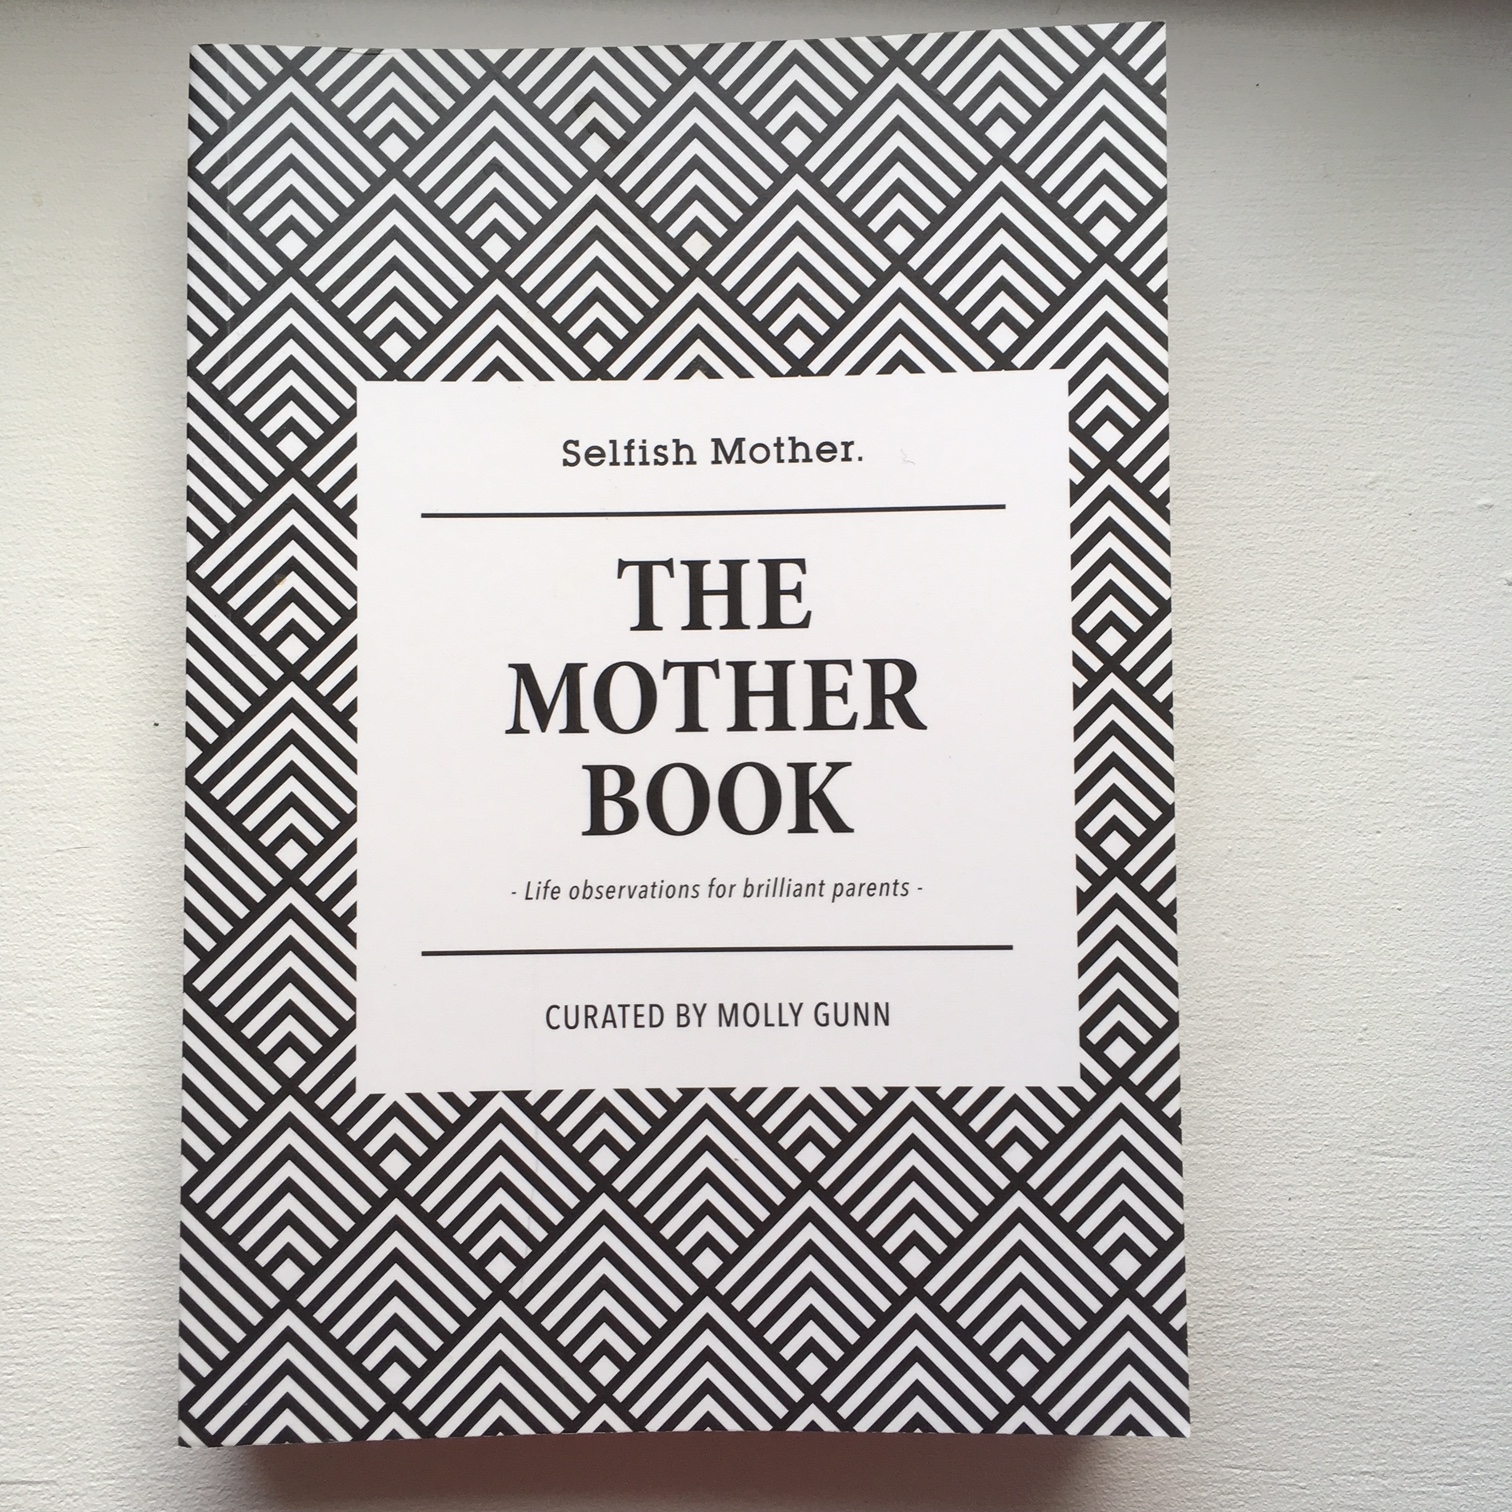 The Mother Book - Molly Gunn    This is a series of blog posts taken from the 'Selfish Mother' blog site.  It is a snapshot of essays from (mostly) new mothers, talking about their experiences. Can sometimes just be useful to hear.